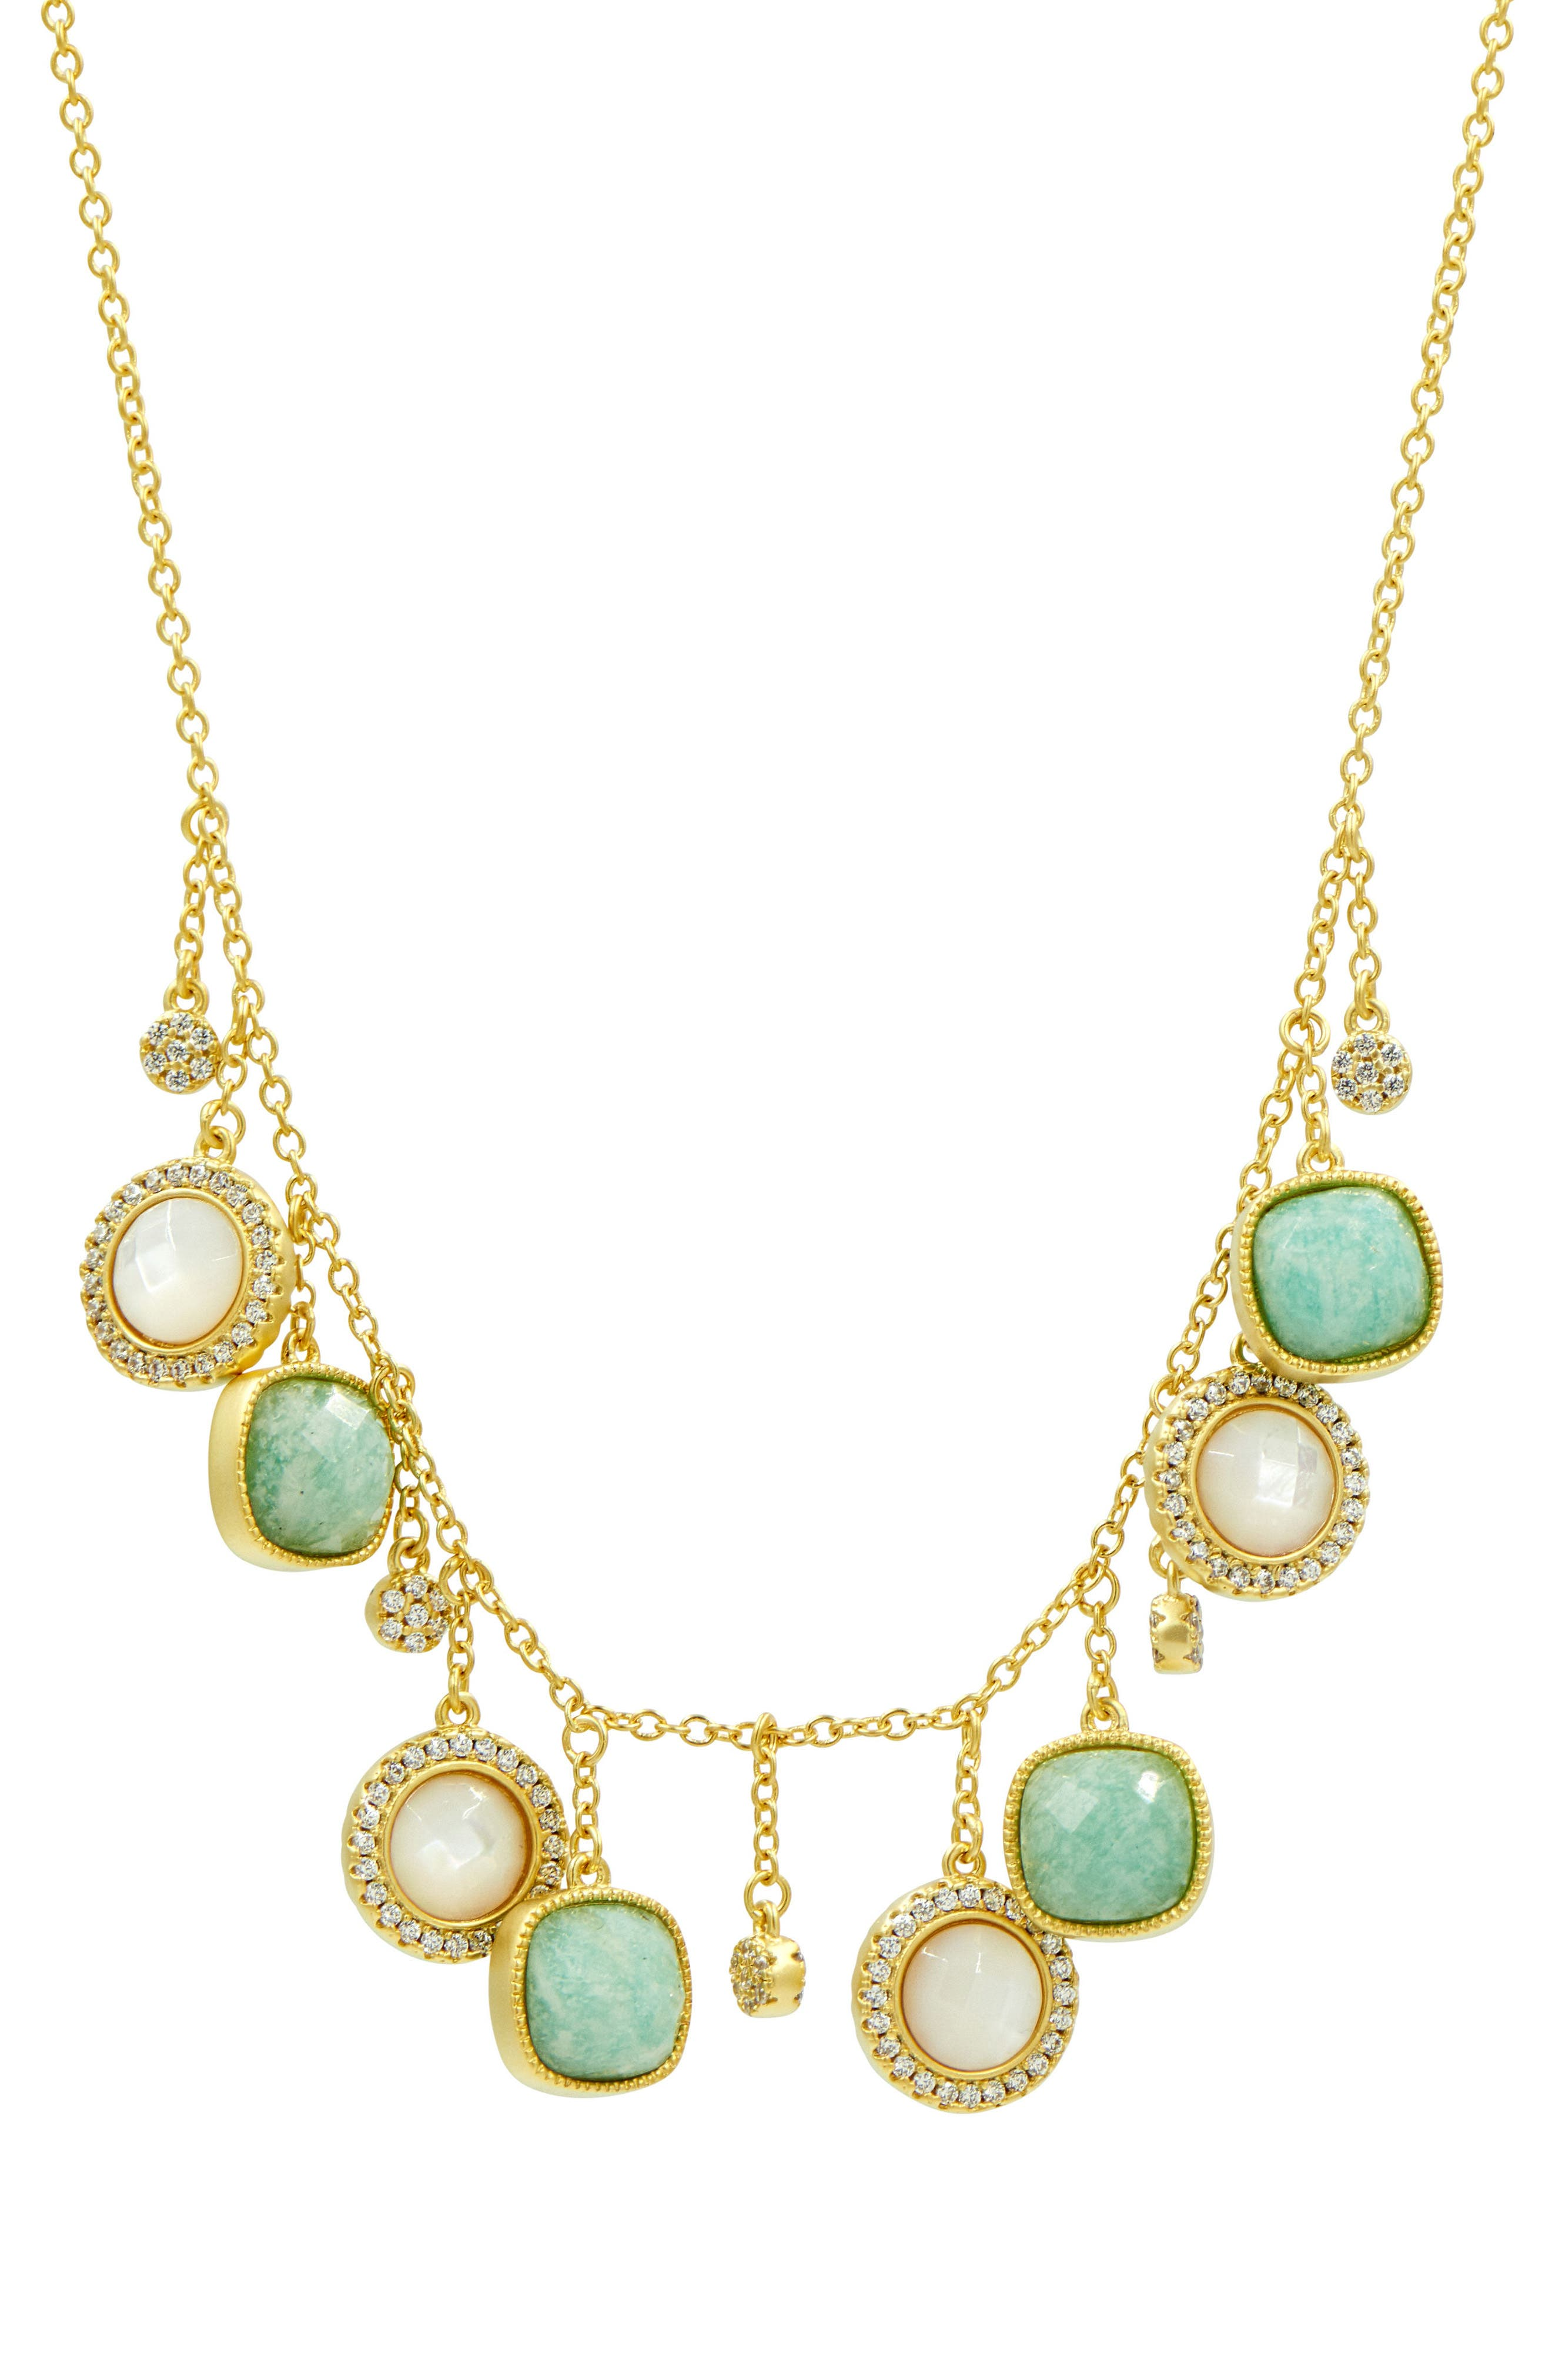 Amazonian Allure Frontal Necklace,                             Main thumbnail 1, color,                             710